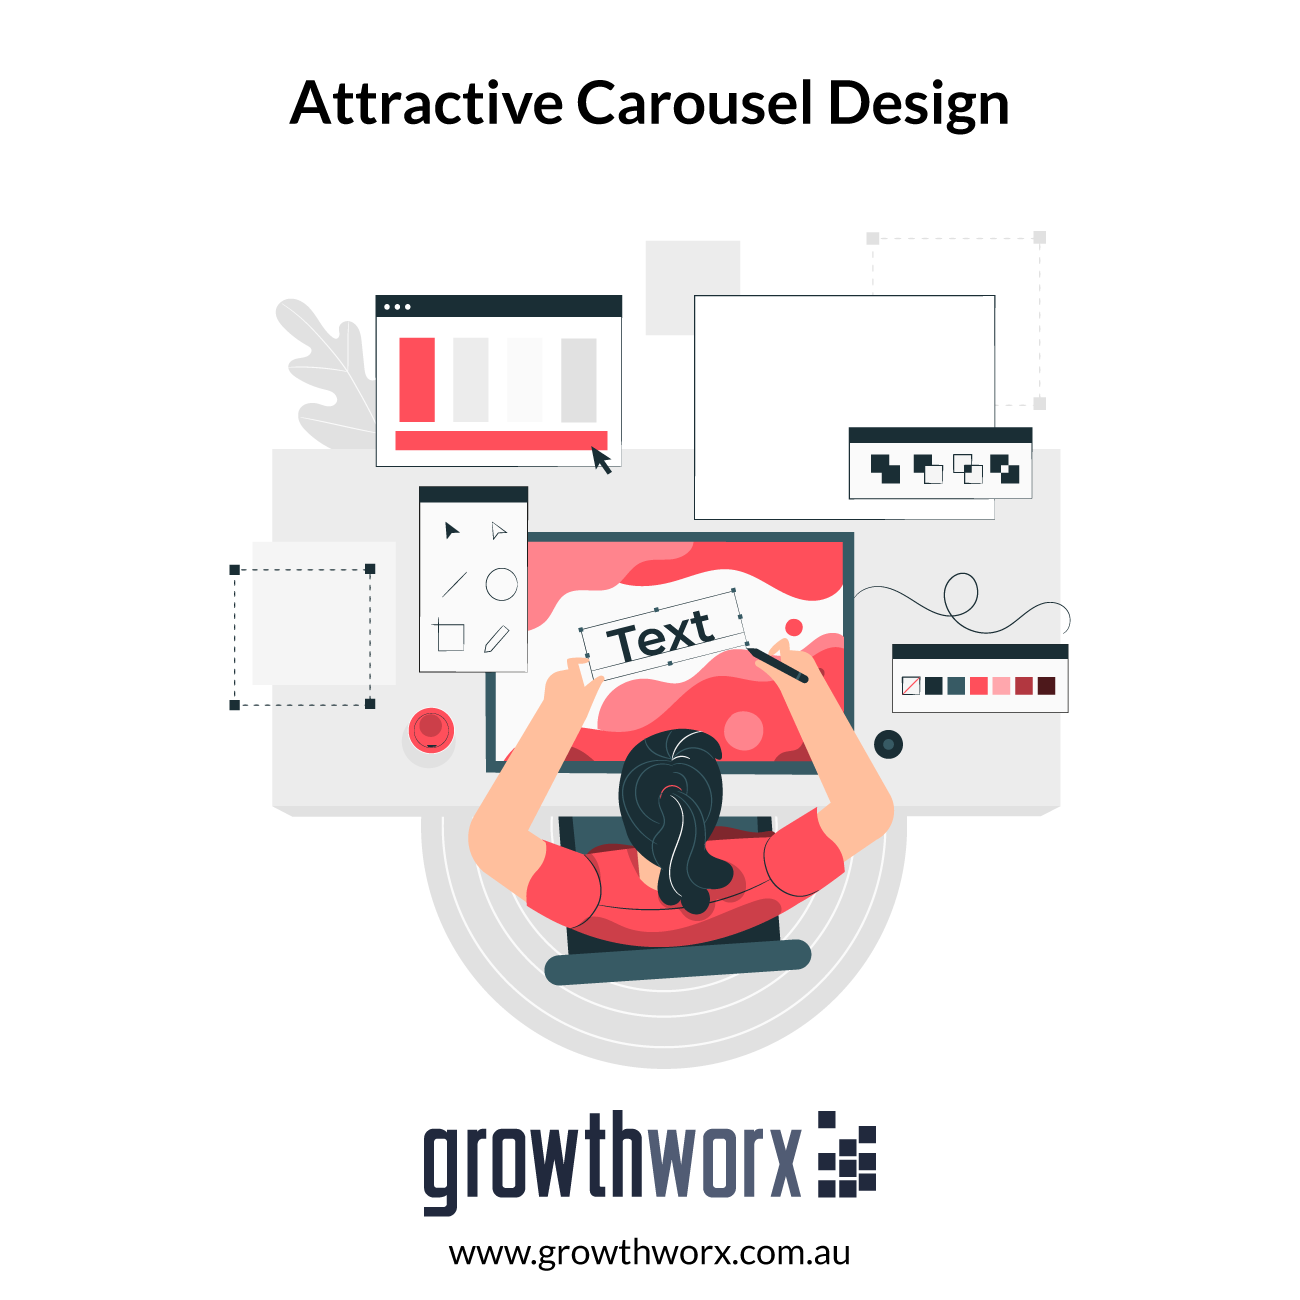 I will design attractive carousel for facebook ads campaign 1